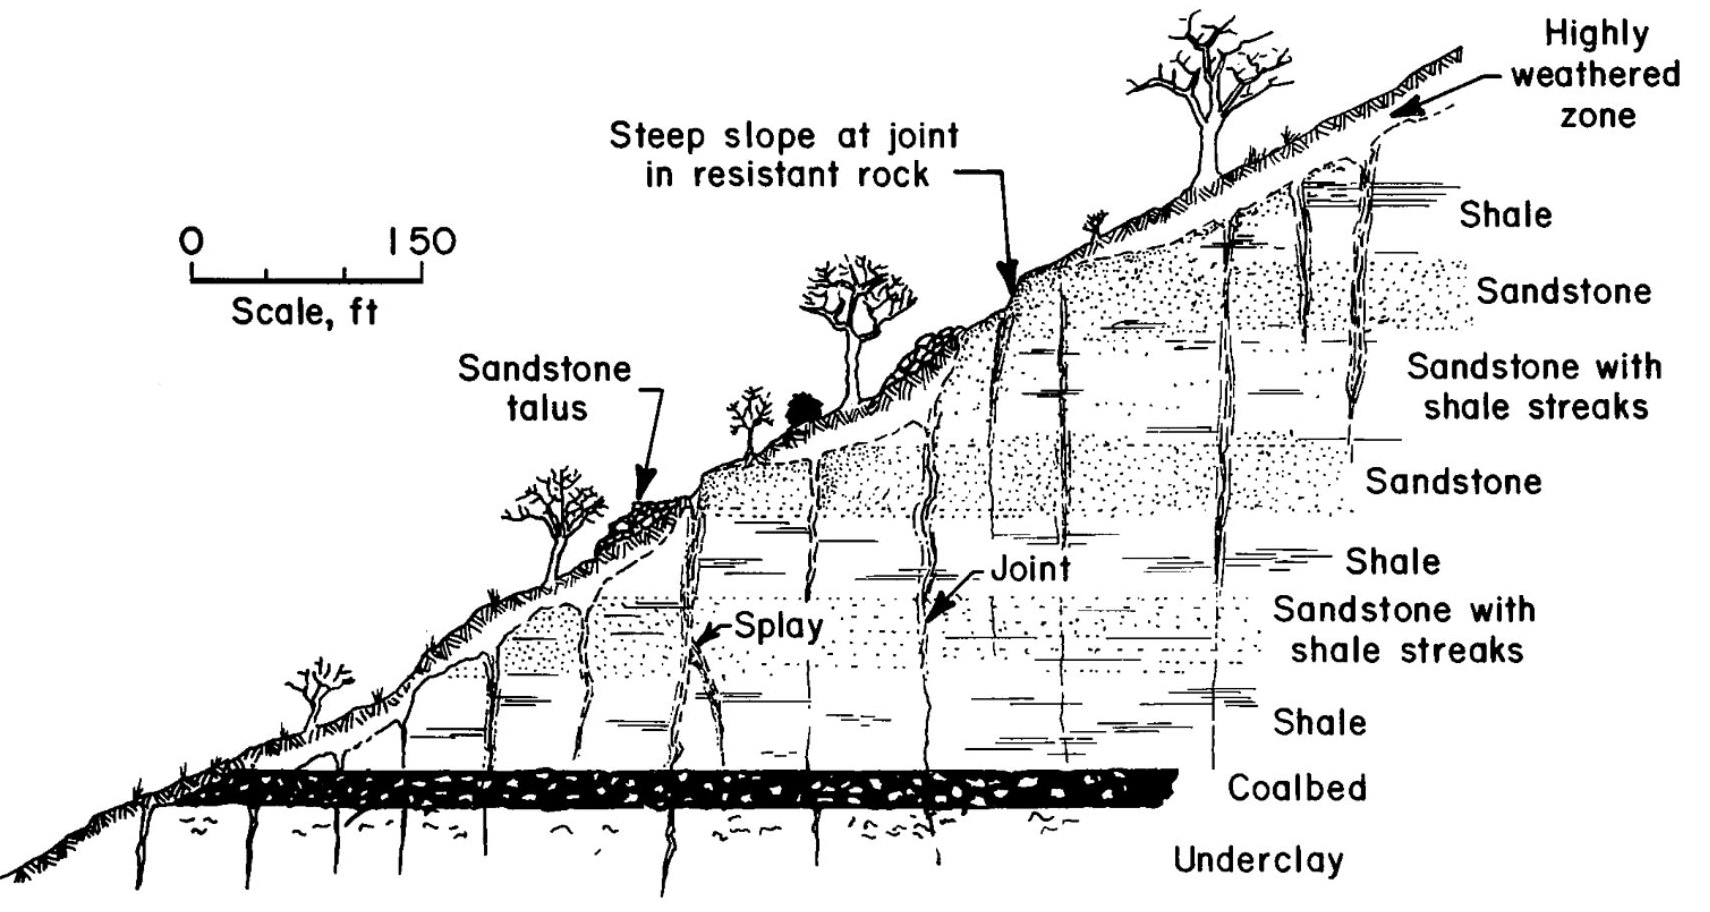 Stress Release Fractures Hill Seams Coal Mining Geology